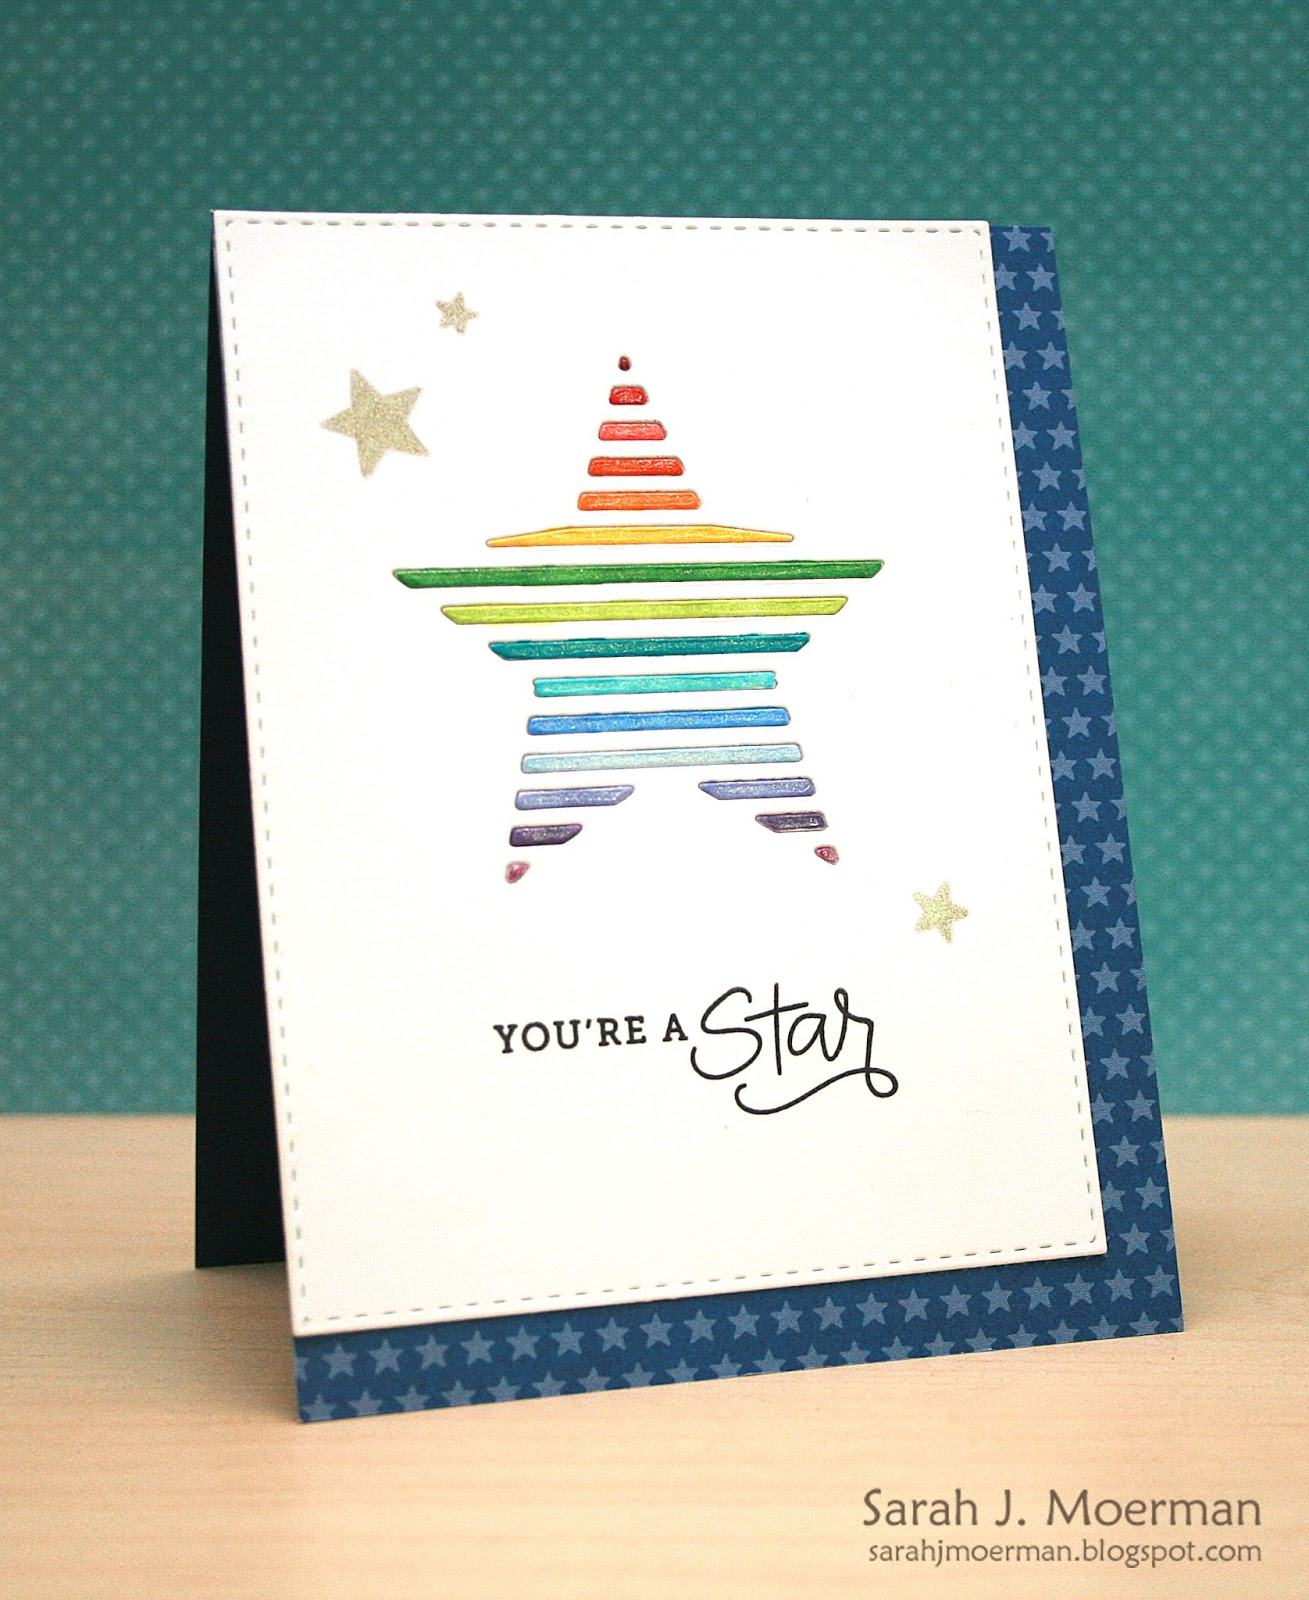 My impressions simon says stamp august card kit youre a star simon says stamp august card kit youre a star m4hsunfo